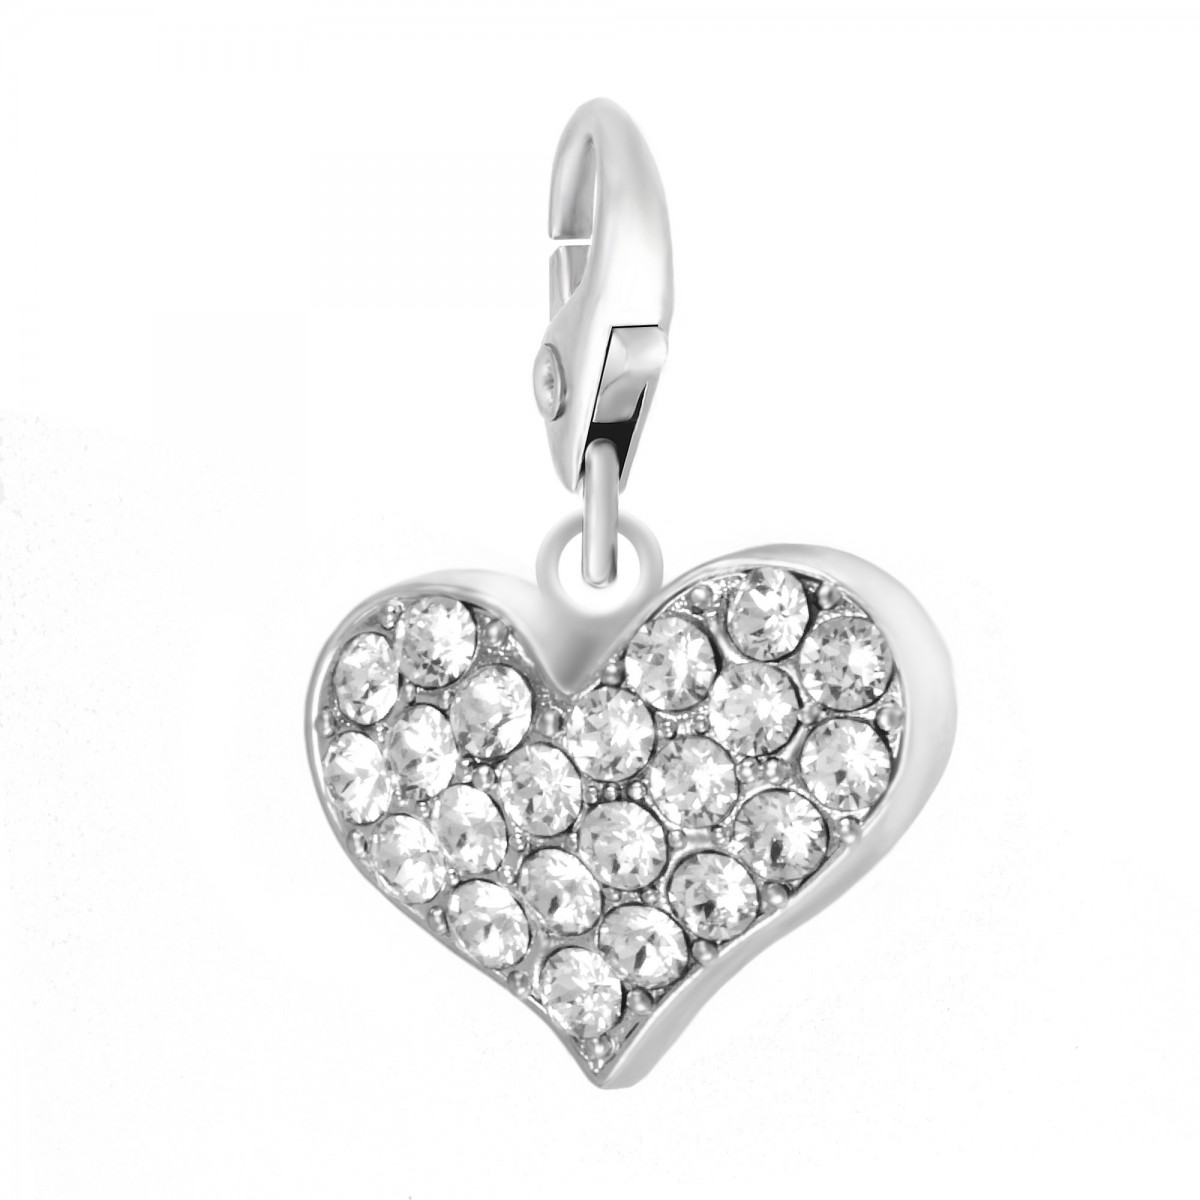 Charm Coeur So Charm made with crystal from Swarovski